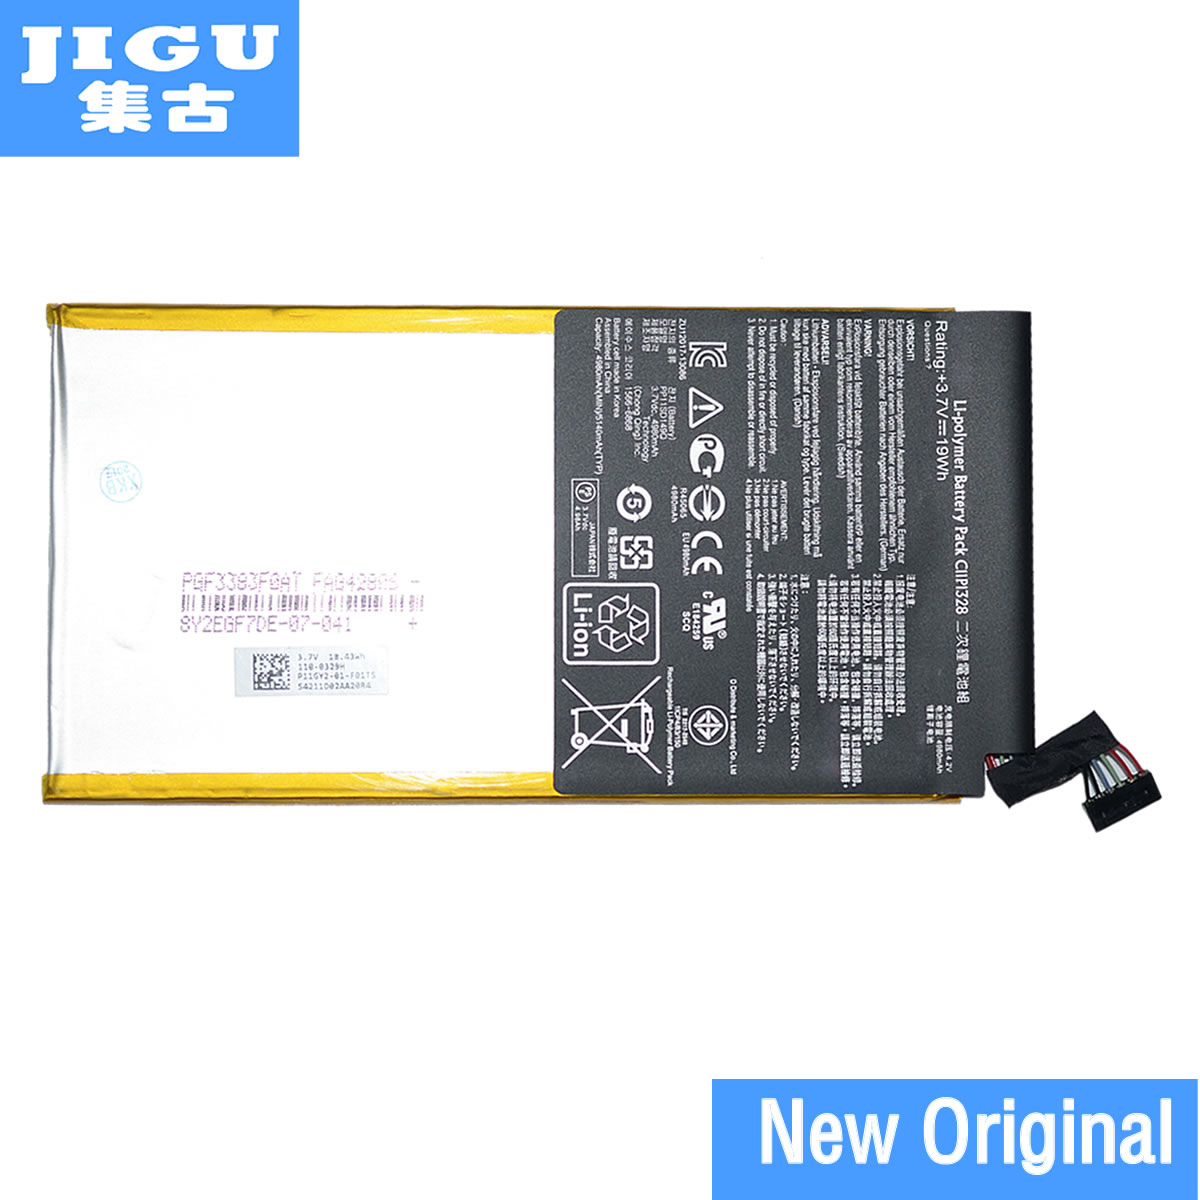 JIGU original Battery C11P1328 for ASUS for Pad Transformer Pad TF103CG TF103CX TF103C jigu original new 66wh 15v c41n1337 battery for asus portable aio pt2001 19 5 inch batteria batteries high quality